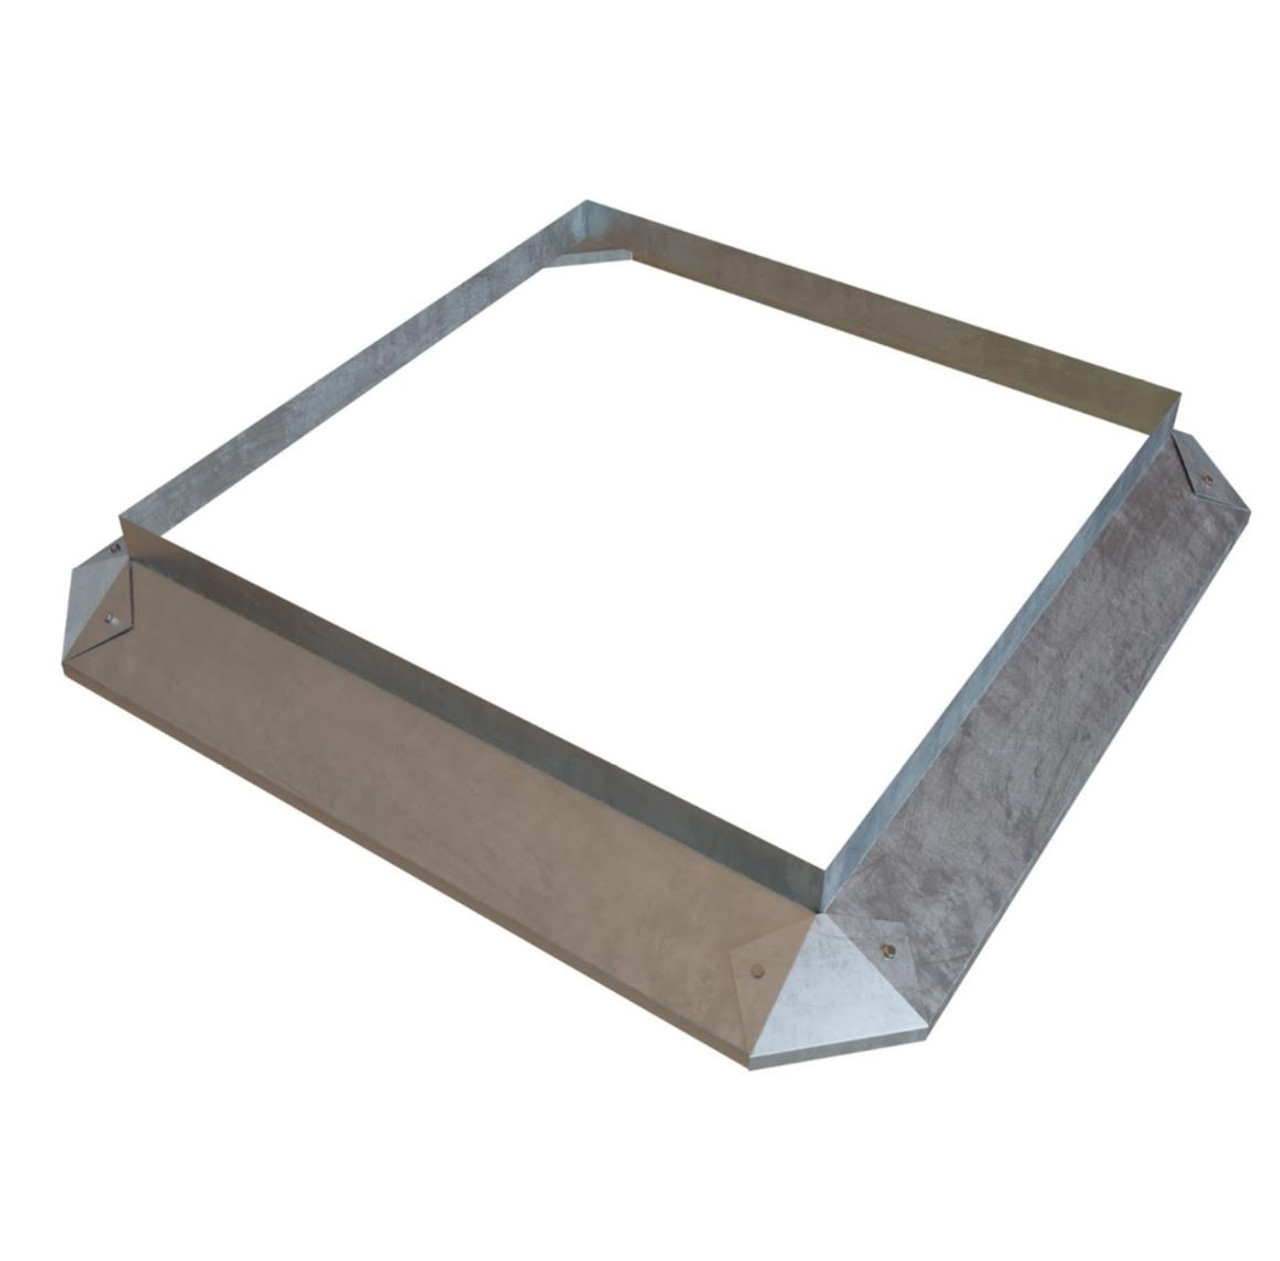 Curb Deflector for Exhaust Fan Base